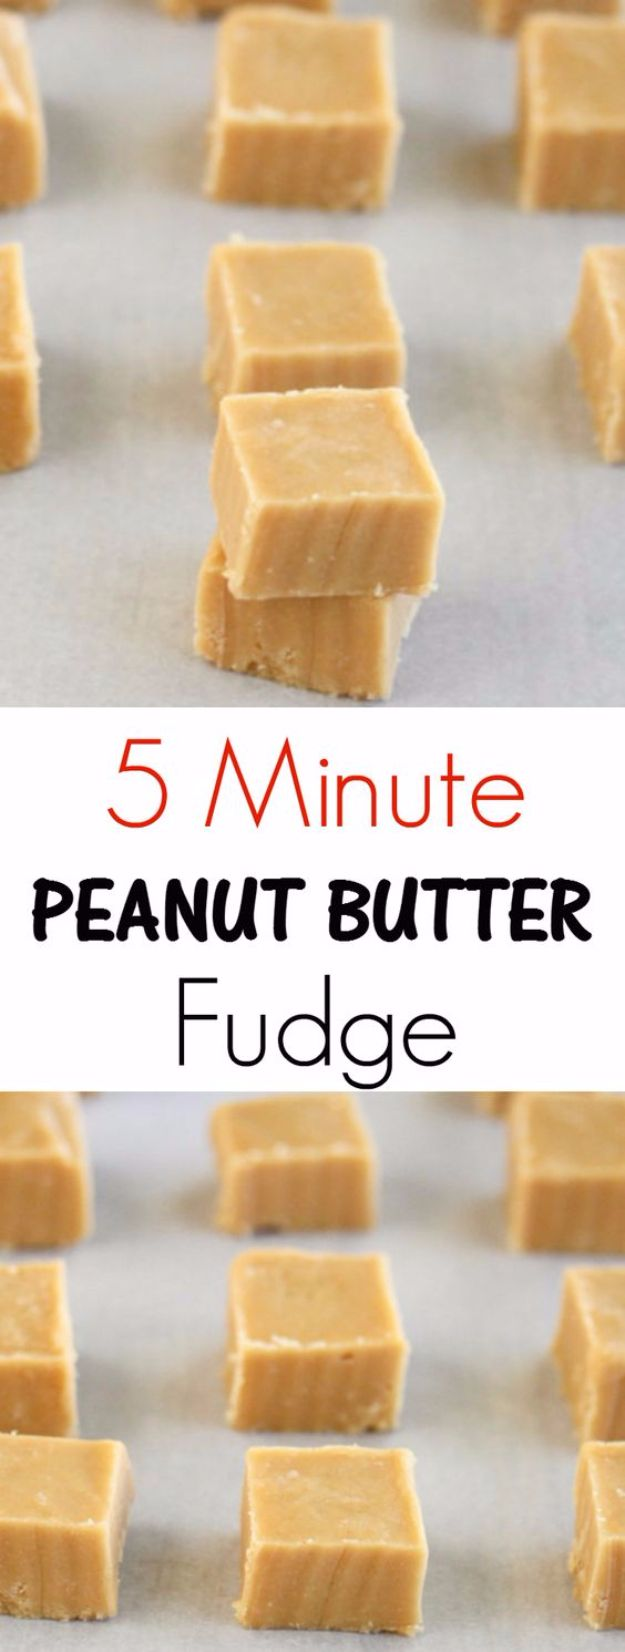 Easy Snacks You Can Make In Minutes - 5-Minute Microwave Peanut Butter FUdge - Quick Recipes and Tricks for Making After Workout and After School Snack - Fast Ideas for Instant Small Meals and Treats - No Bake, Microwave and Simple Prep Makes Snacking Fun #snacks #recipes